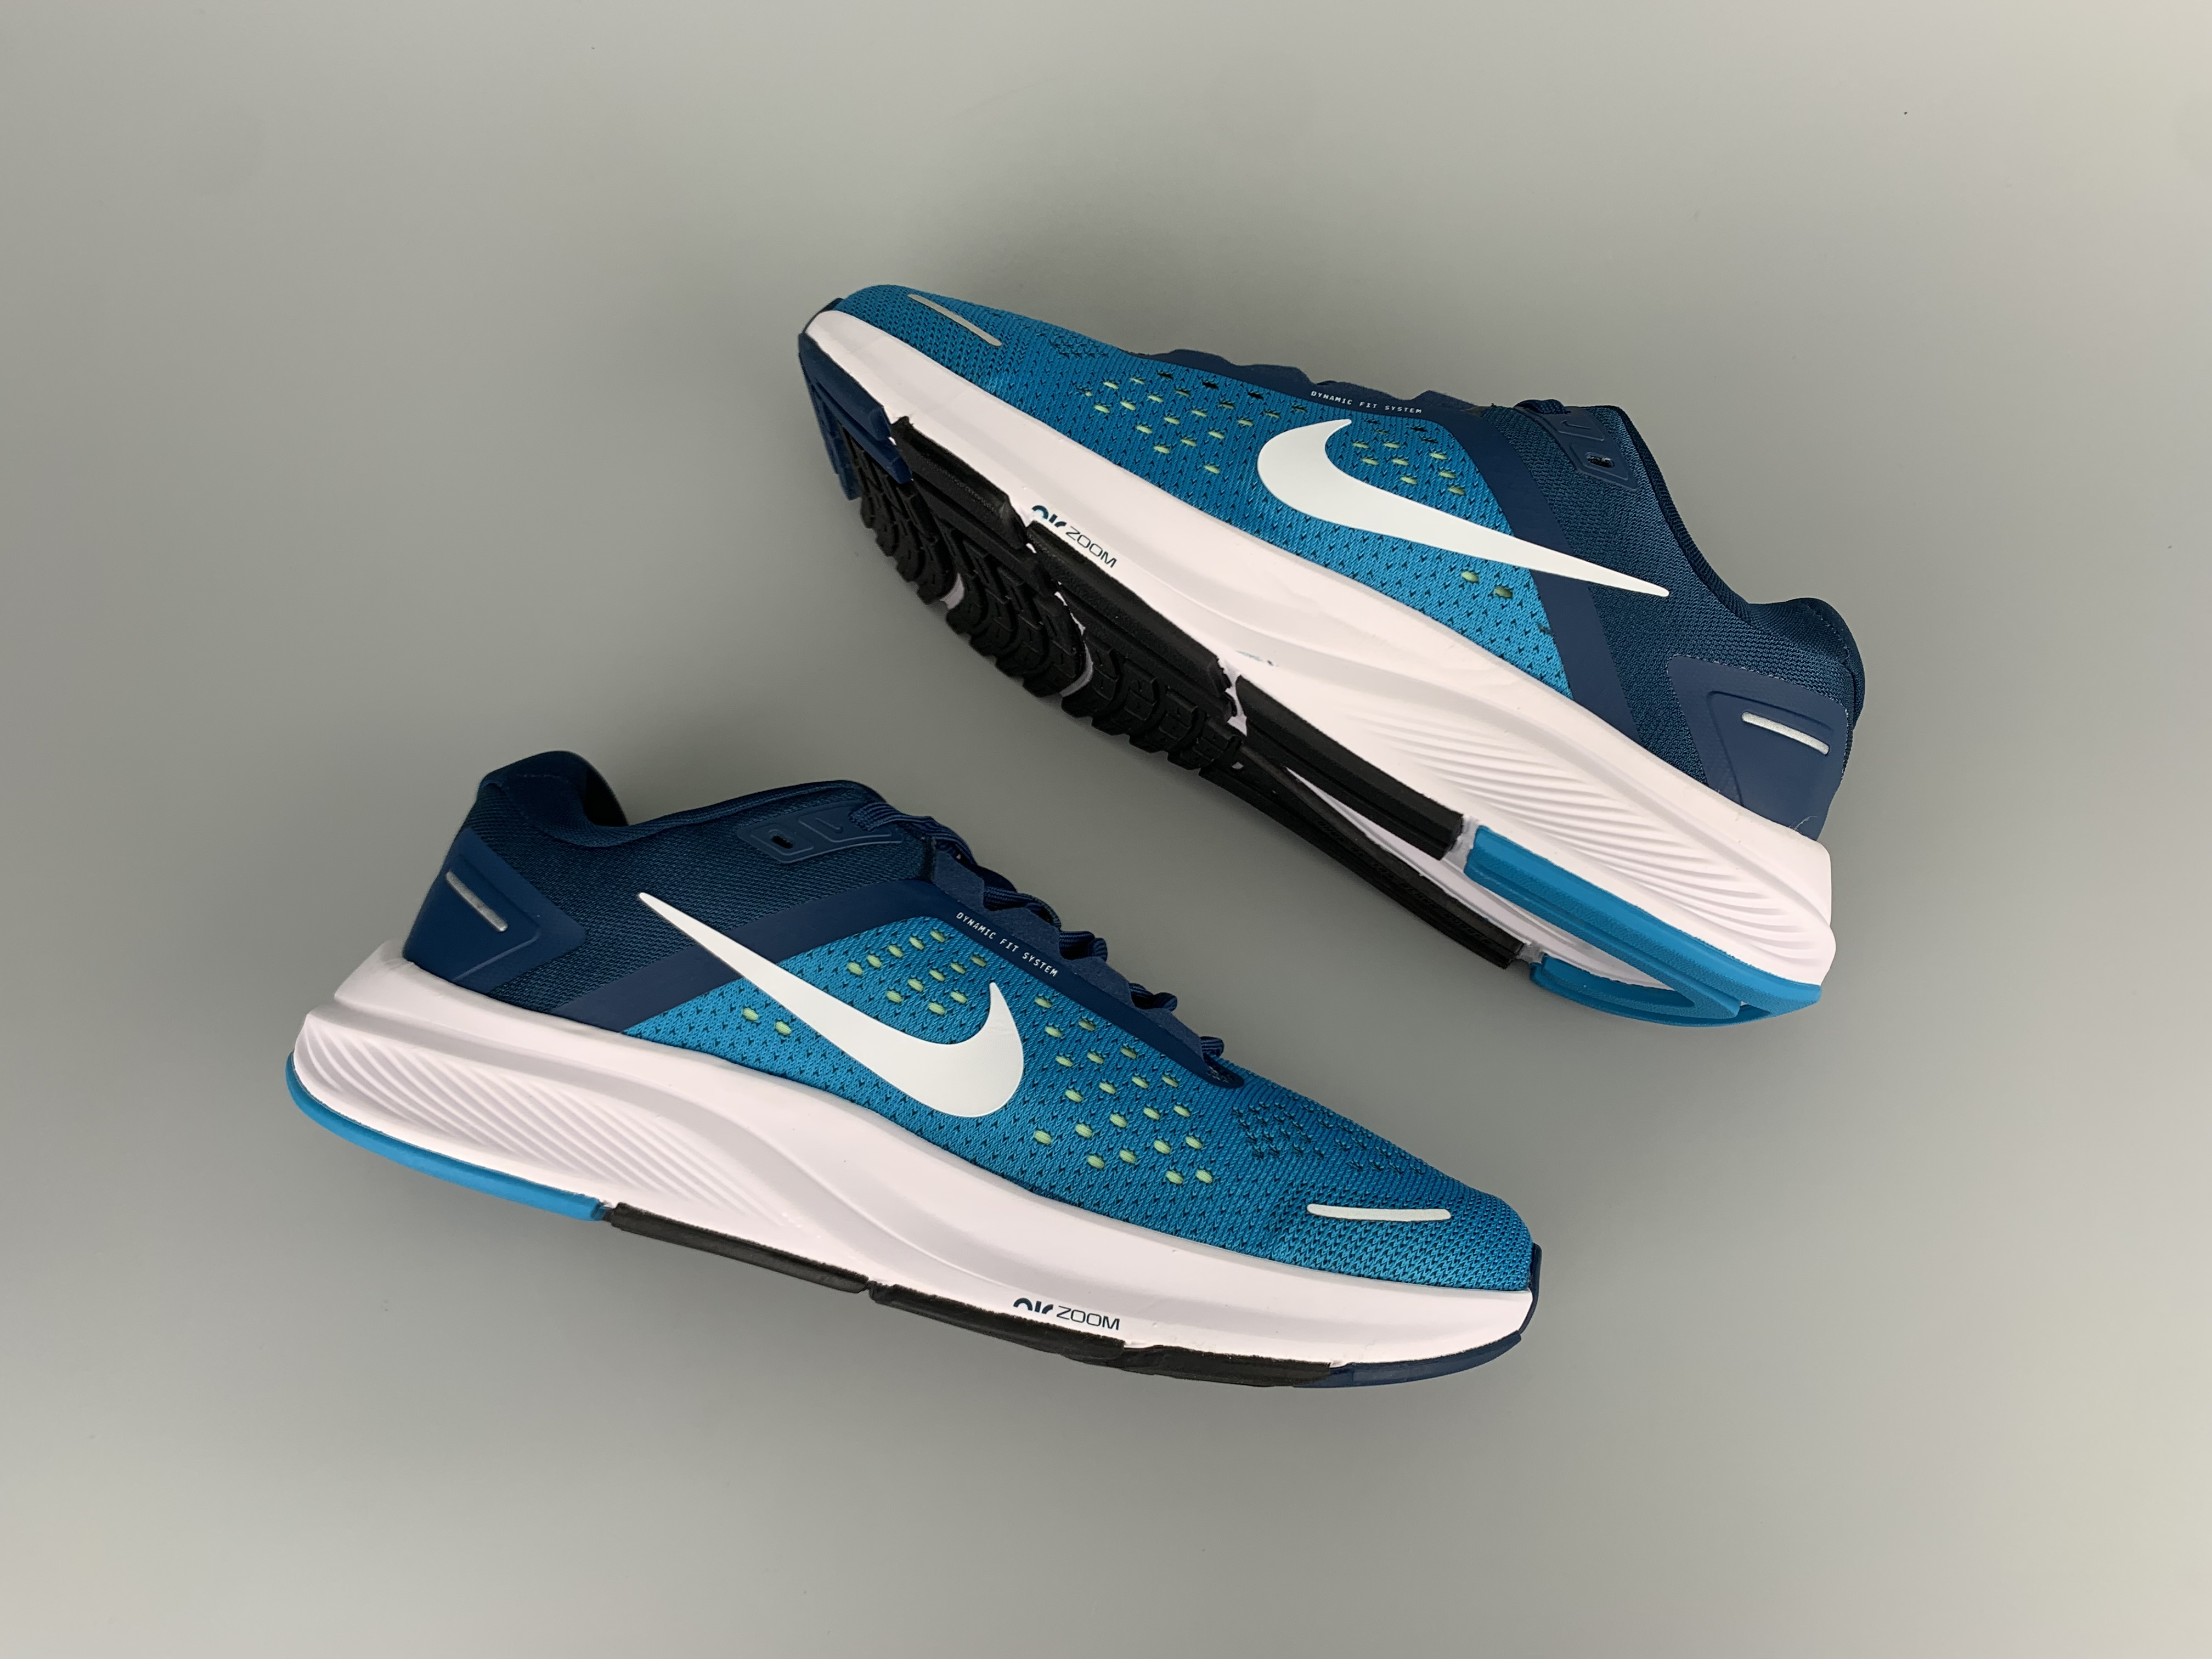 2020 Men Nike Zoom Structure 23 Sea Blue White Running Shoes